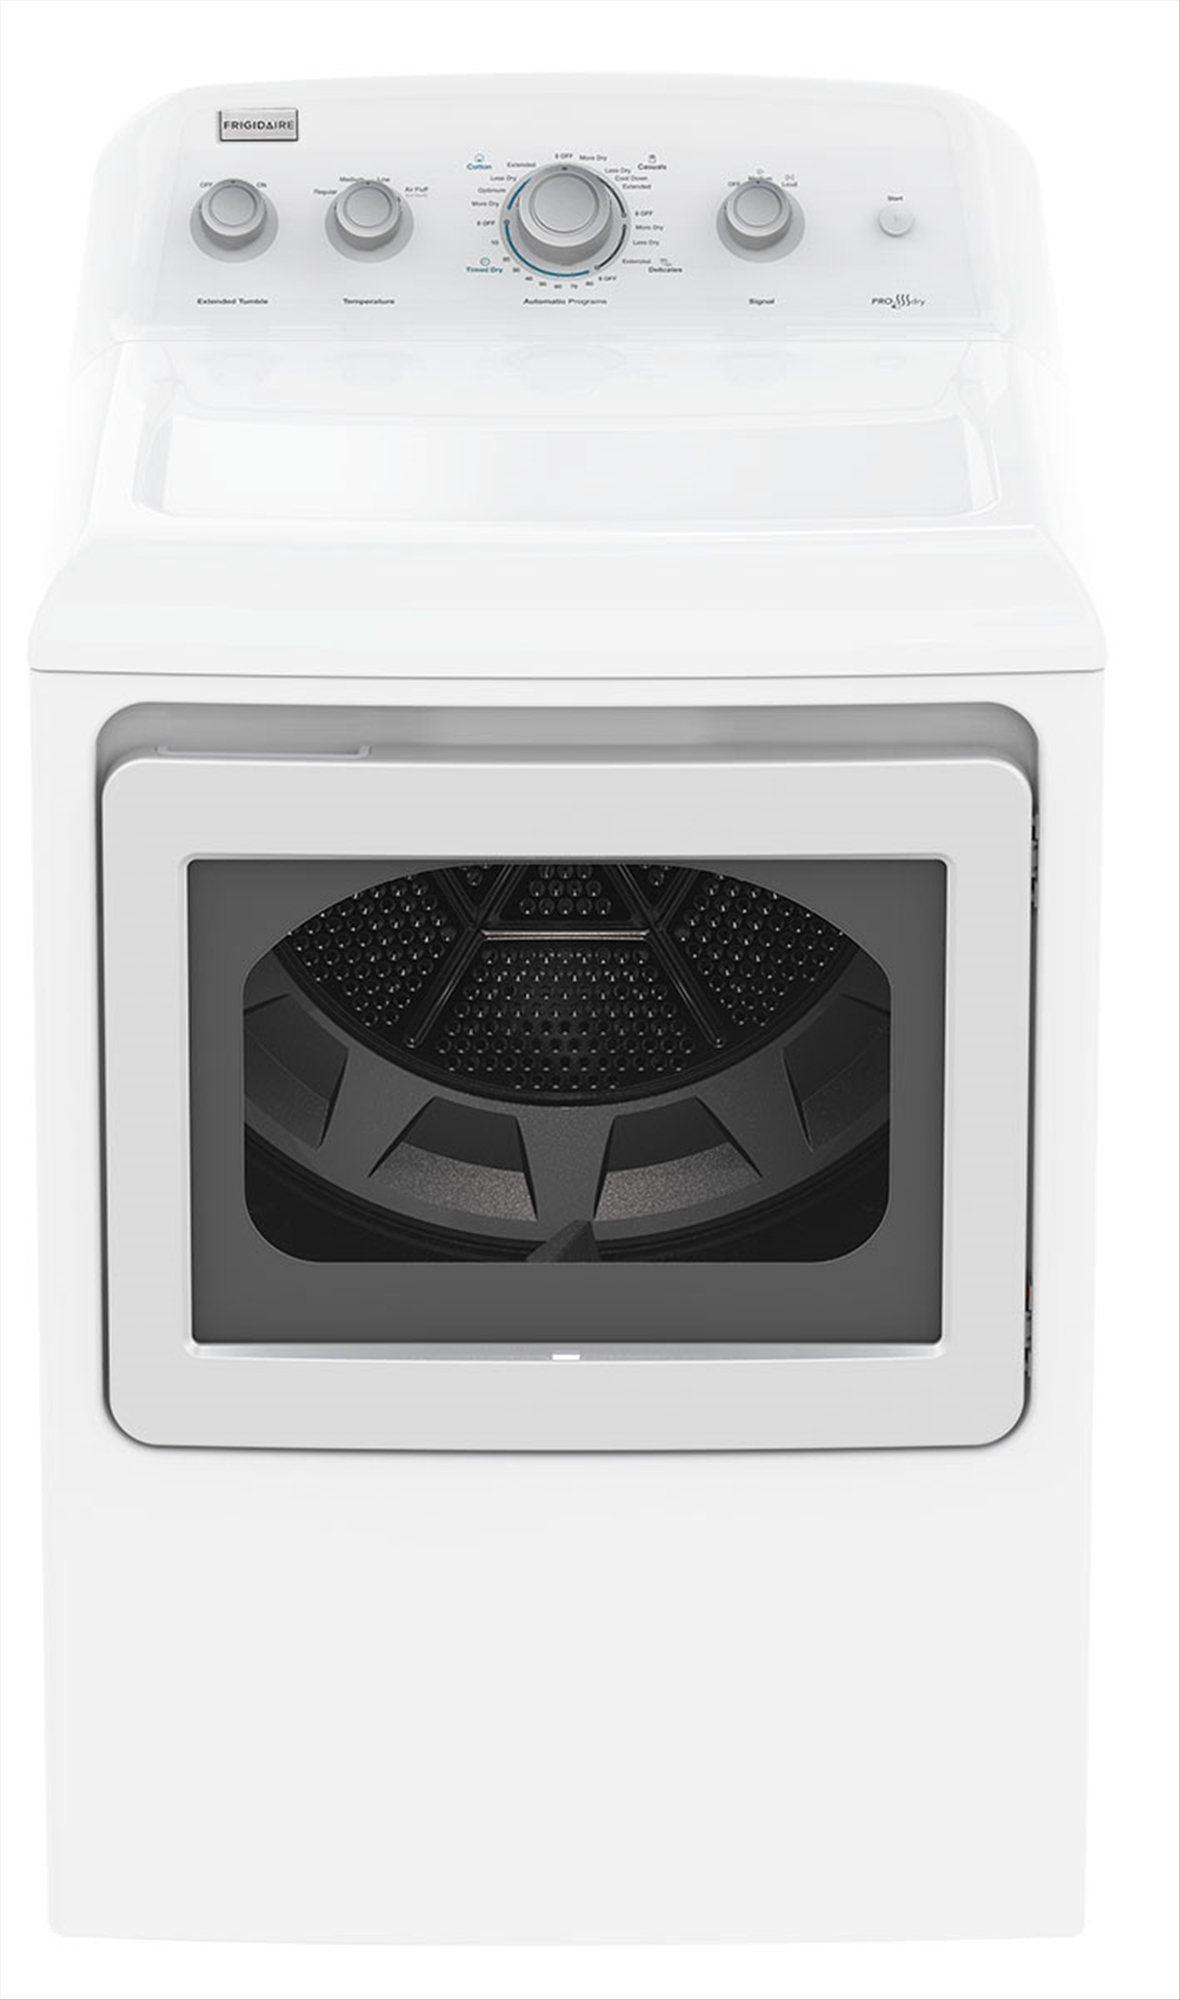 best washer beautiful diy ana build and white samsung it lg of for lowes whirlpool dryer interchangeable cheap maytag d how pedestal to electrolux universal pedestals com